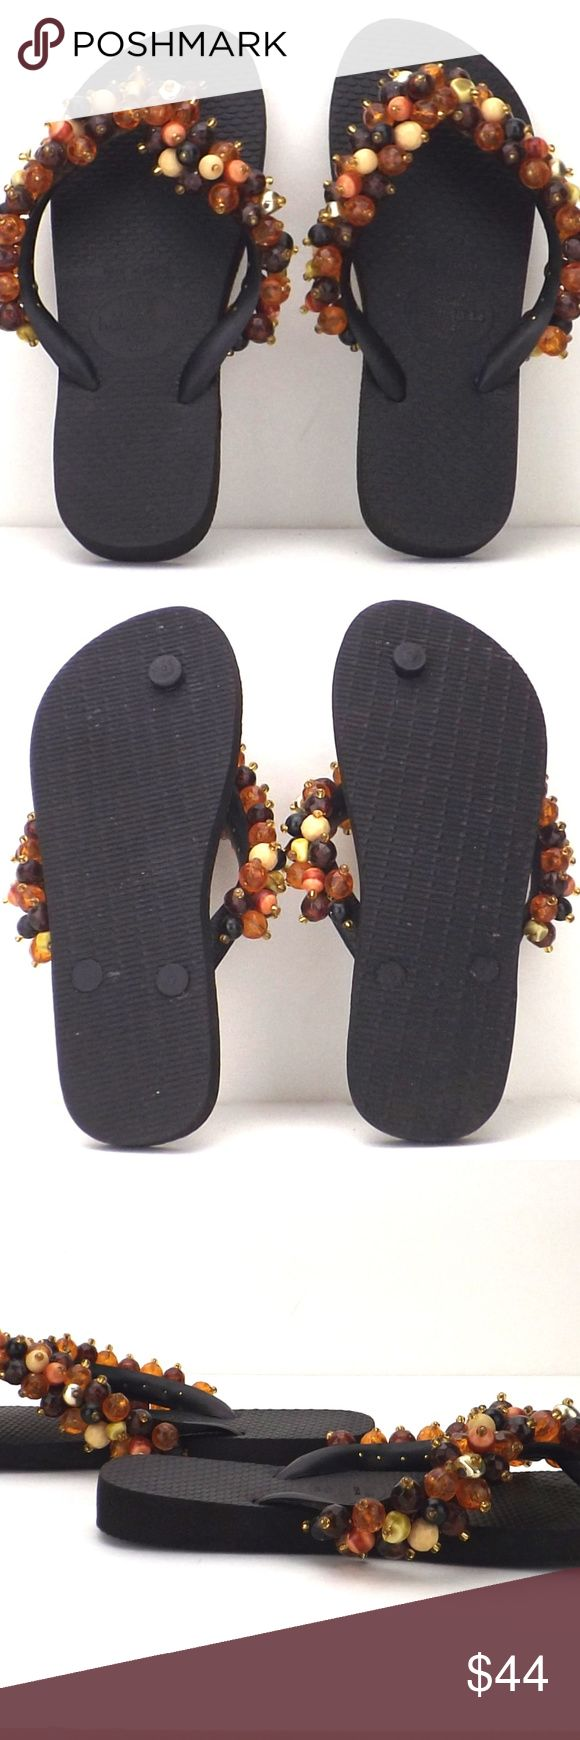 """womens beaded Havaianas Brazilian sandals thongs vintage Havaianas beaded Brazilian flip flops thongs zori sandals Hawaiian beach bohemian foot jewelry beach pool party rubber water resistant black foot bed round plastic beads orange black rust cream gold large beads topped with small glass beads securely wired through straps good vintage condition gently/rarely worn no detected issues tag size 35/36 Brazil 4.5 USA toe-heel l: 8 3/4"""" heel h: 3/4"""" toe h: 1/4"""" ball of foot w: 3 1/2"""" ball of…"""